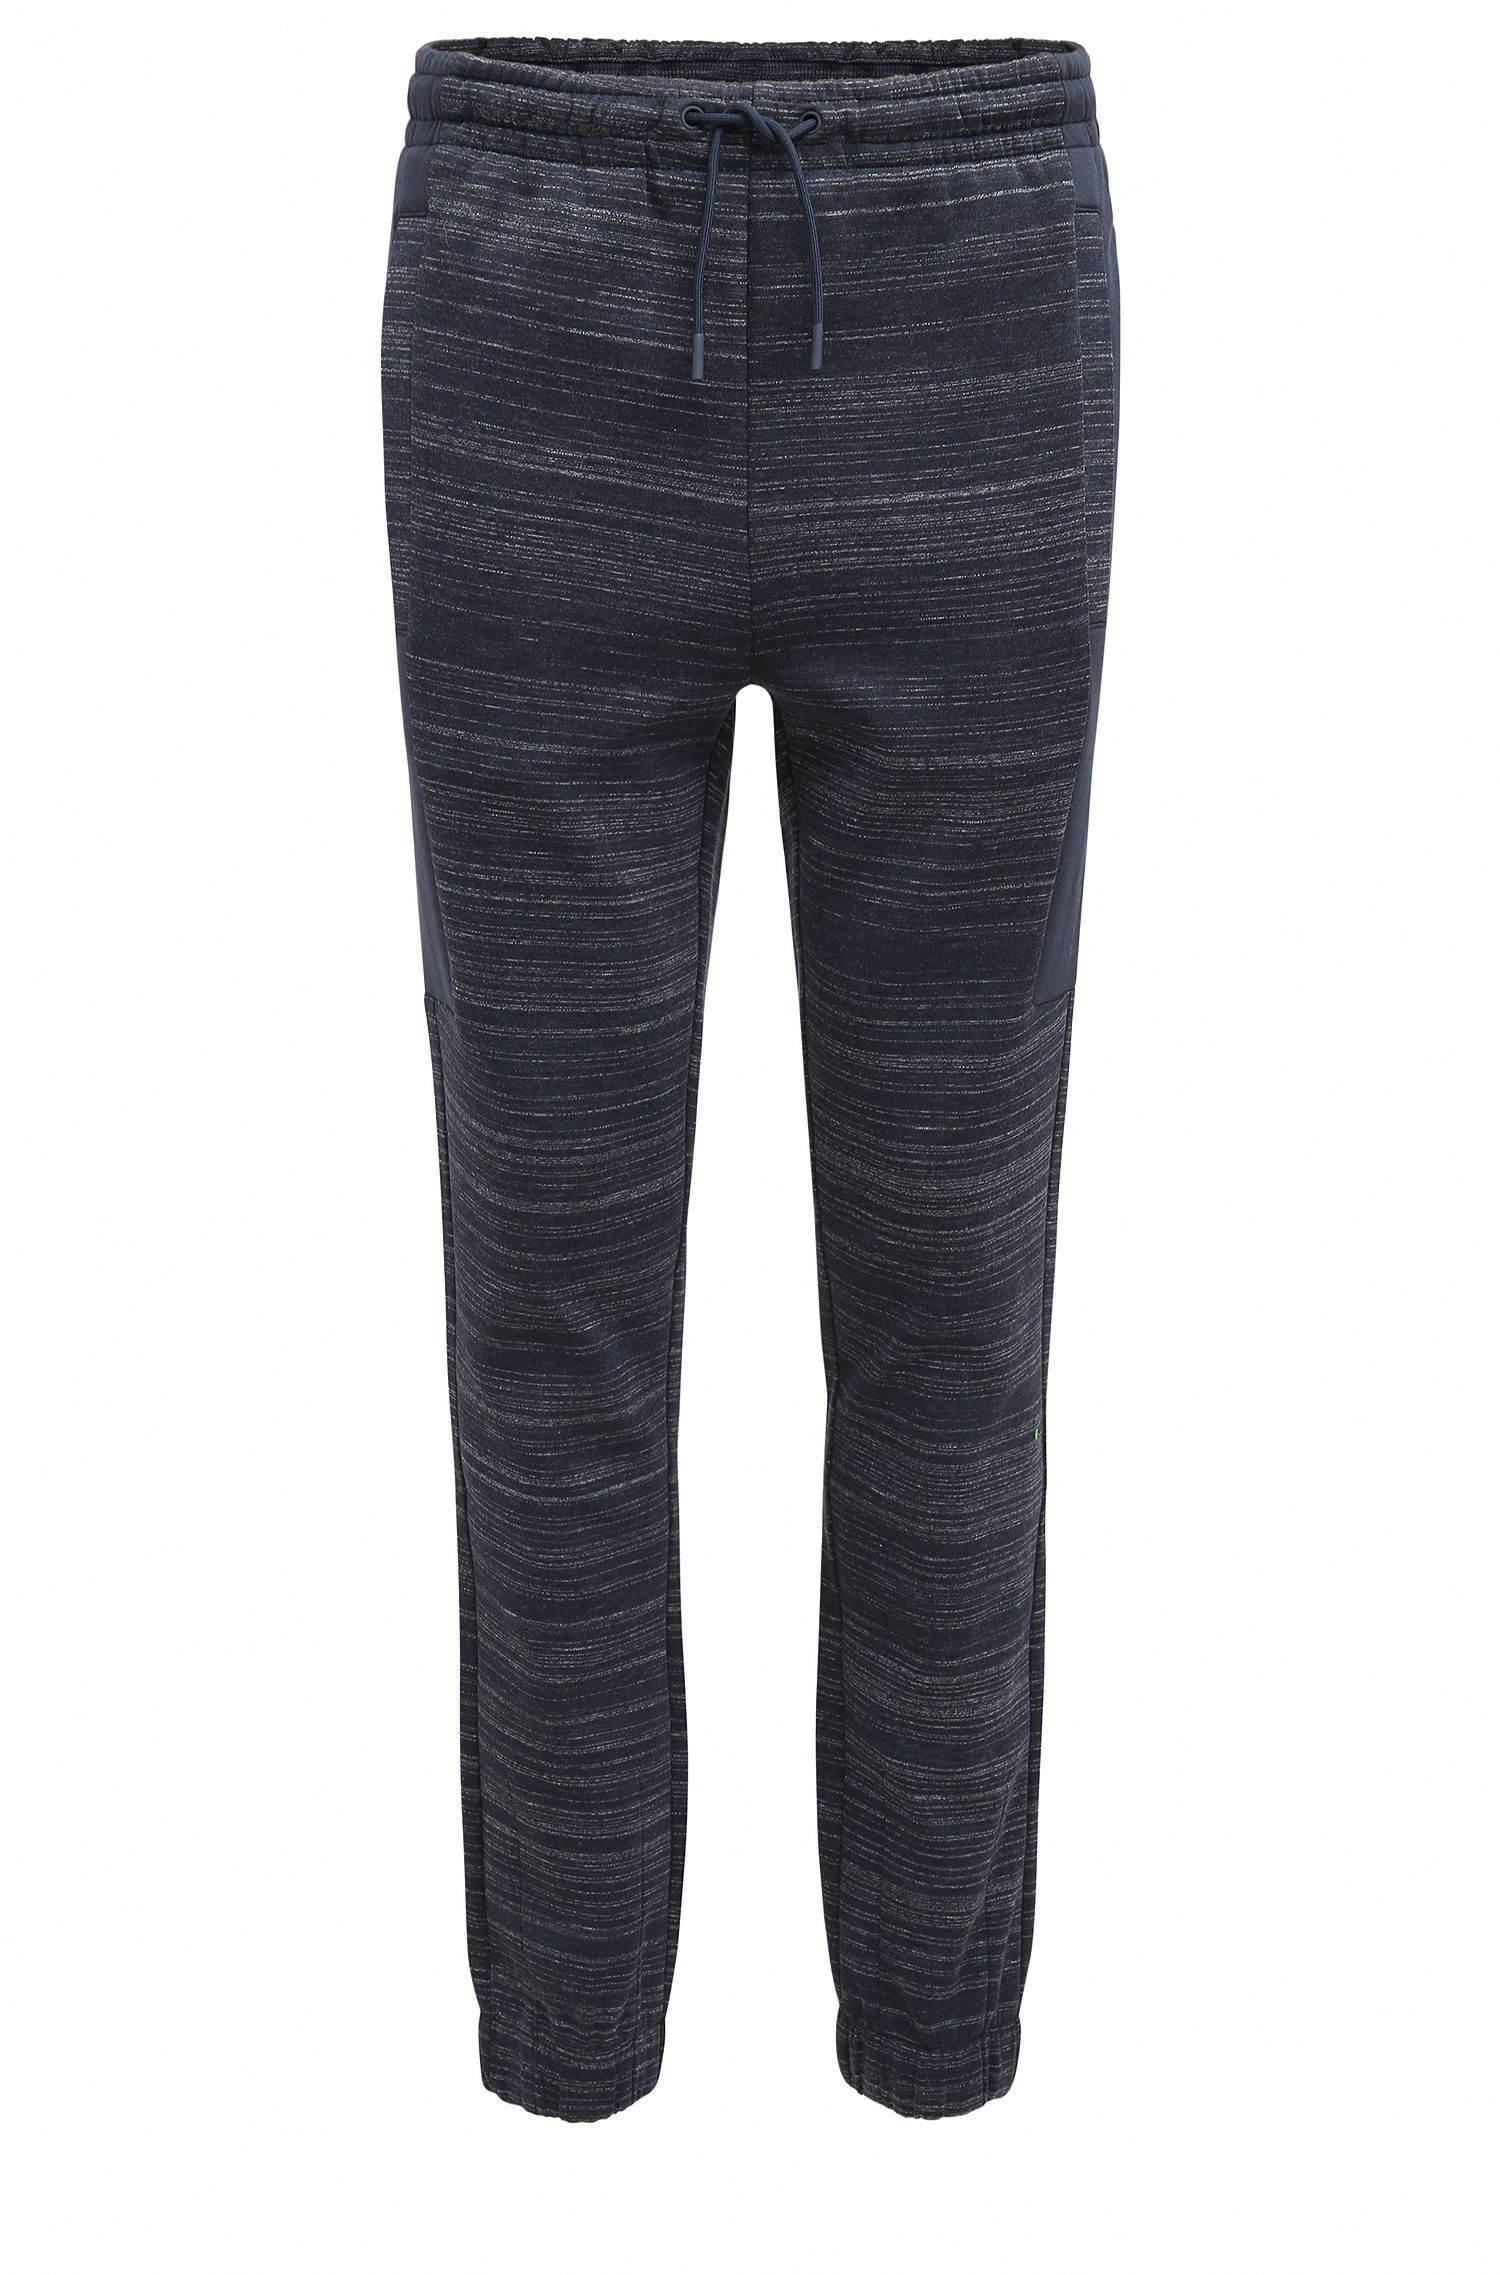 Slim-fit jersey trousers with high-density artwork